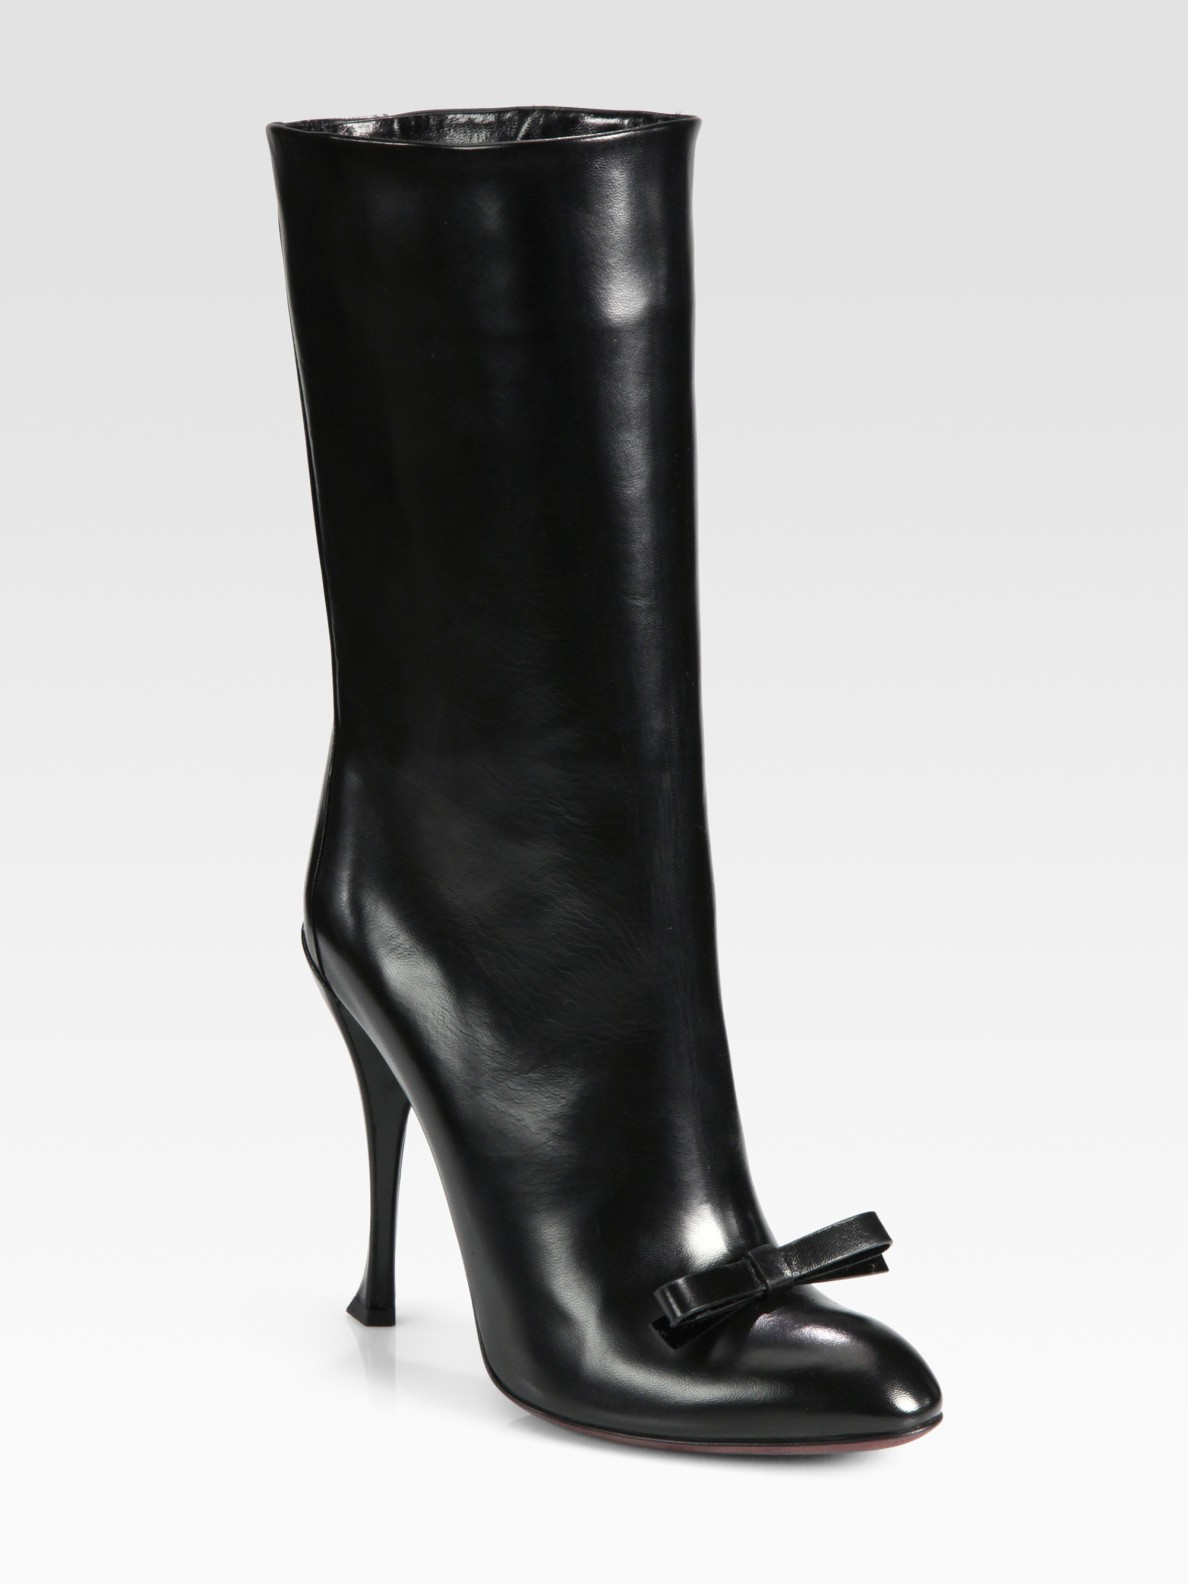 Lyst - Nina Ricci Leather Bow Mid Calf Boots in Black 9ced7d50ab5c